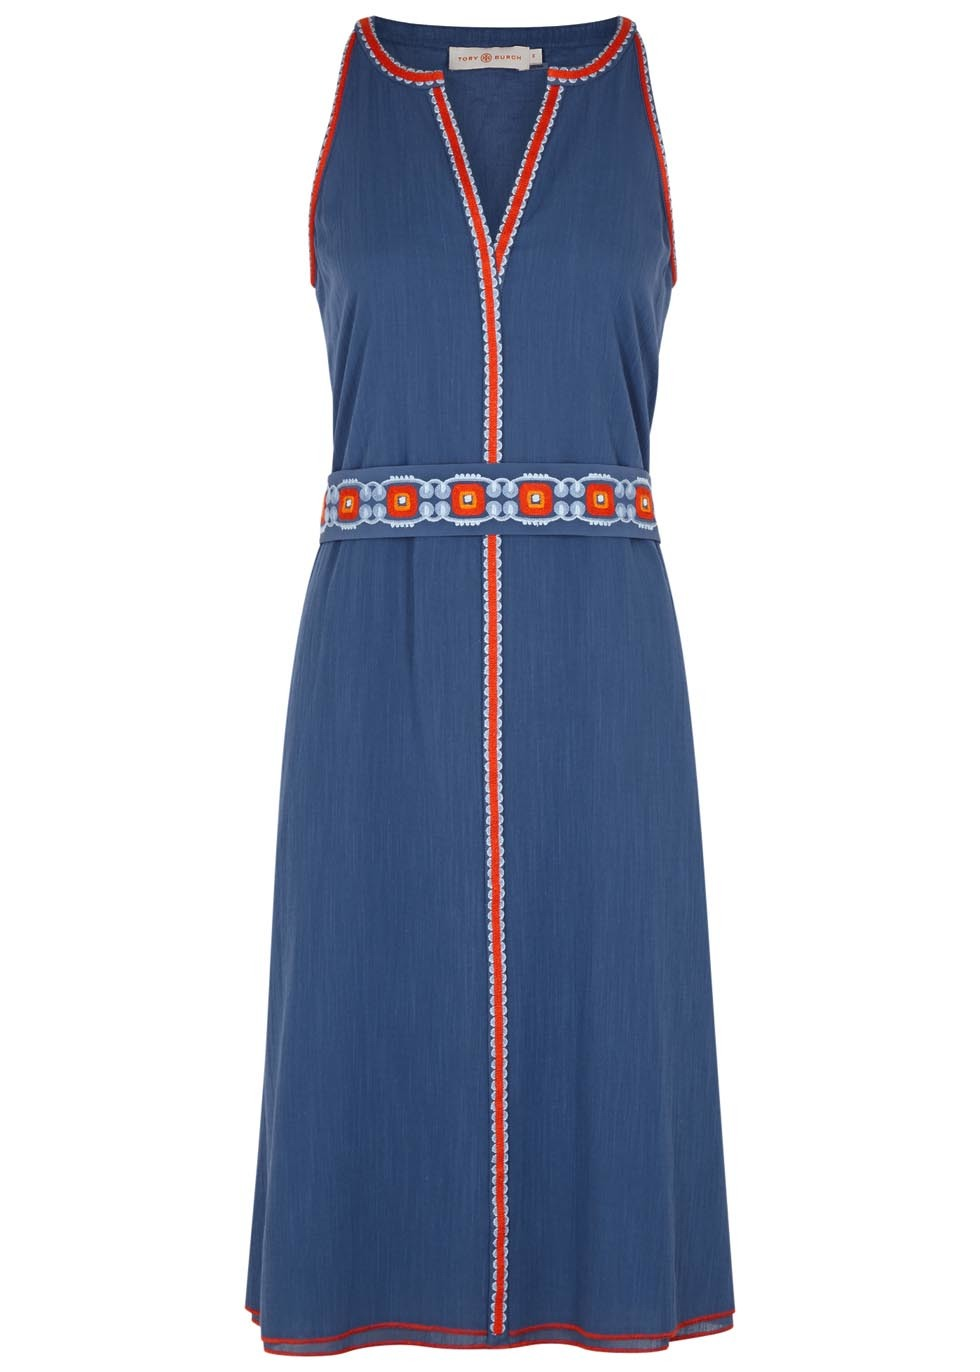 Savannah Embroidered Gauze Dress - style: shift; neckline: v-neck; sleeve style: sleeveless; secondary colour: true red; predominant colour: navy; occasions: casual; length: on the knee; fit: body skimming; fibres: cotton - mix; sleeve length: sleeveless; pattern type: fabric; pattern size: standard; pattern: patterned/print; texture group: other - light to midweight; multicoloured: multicoloured; season: s/s 2016; wardrobe: highlight